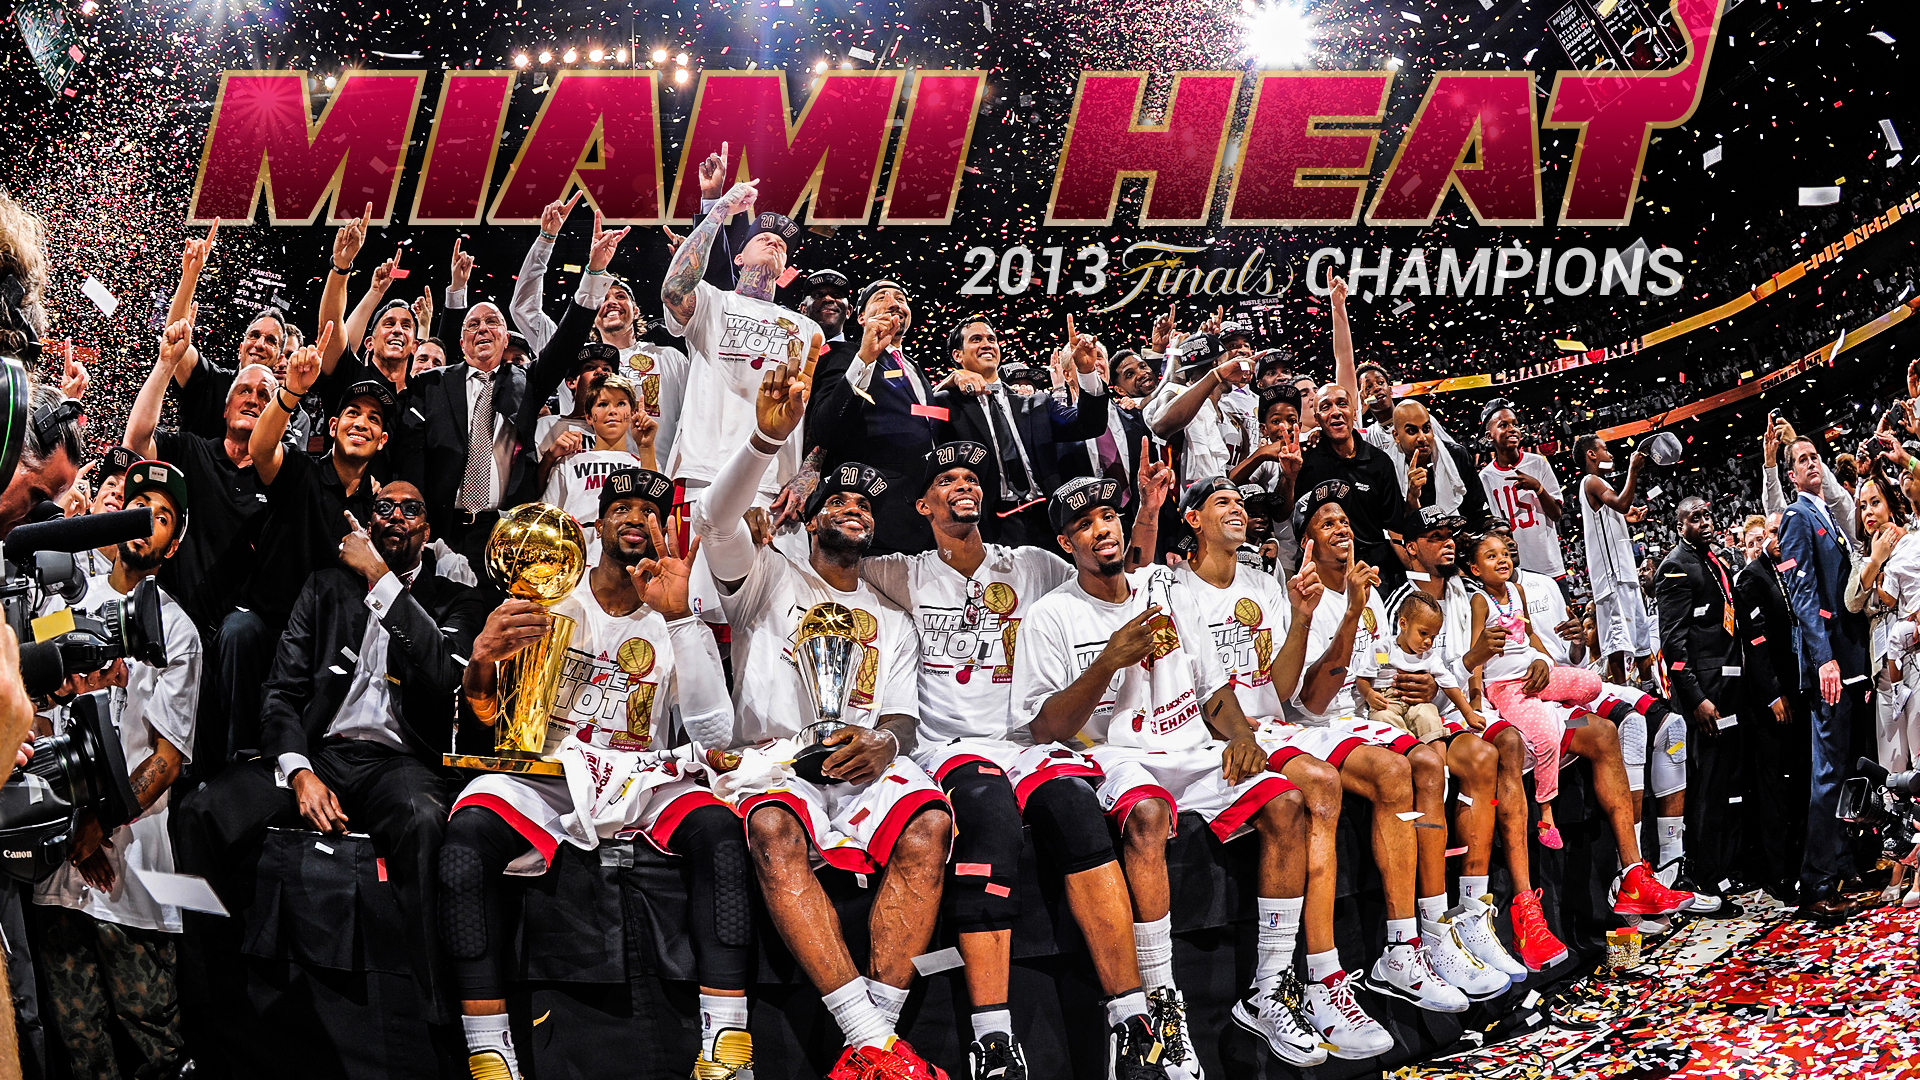 48] Miami Heat Wallpaper 2016 on WallpaperSafari 1920x1080